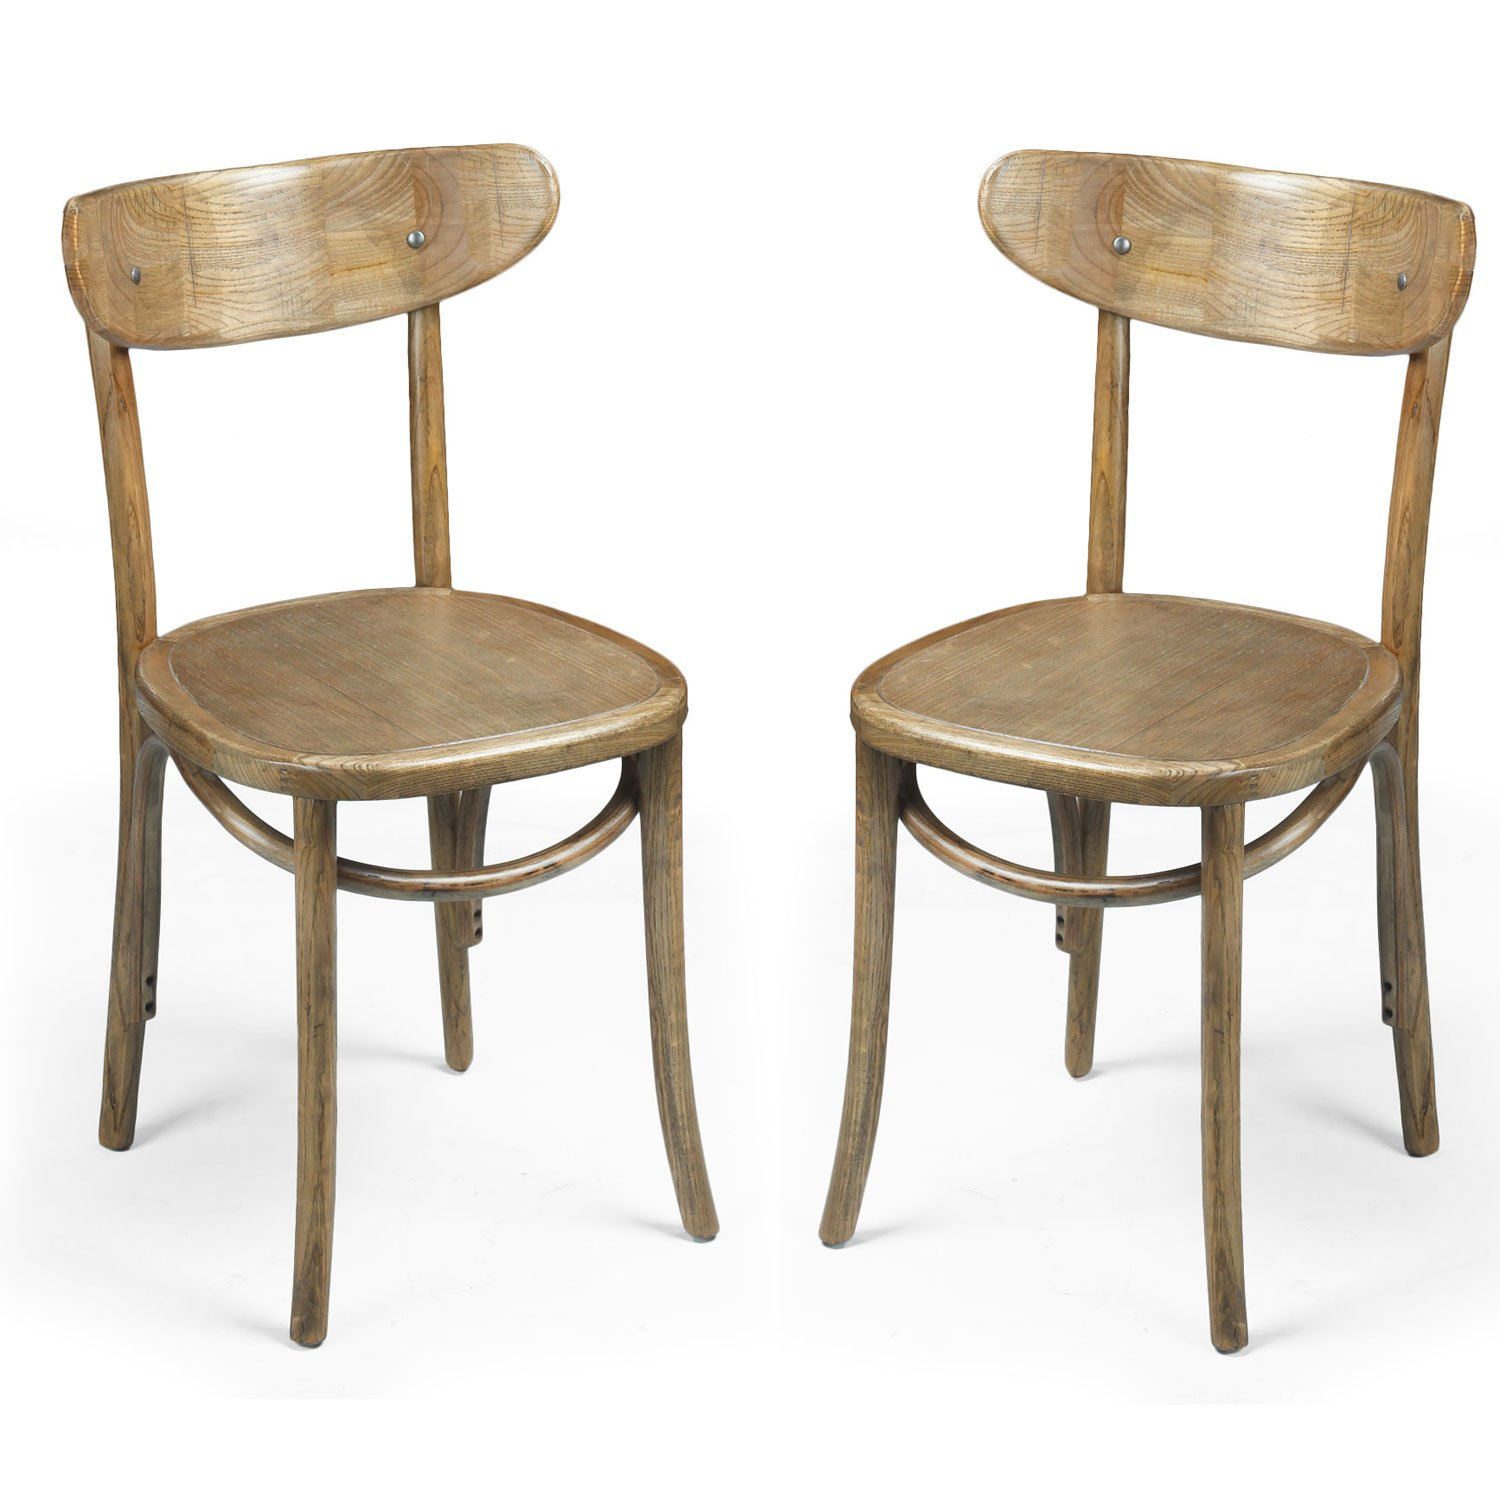 Joveco Elm Wood Vintage Antique Style Solid Dining Chair - Set of 2 Wholesale Price Available